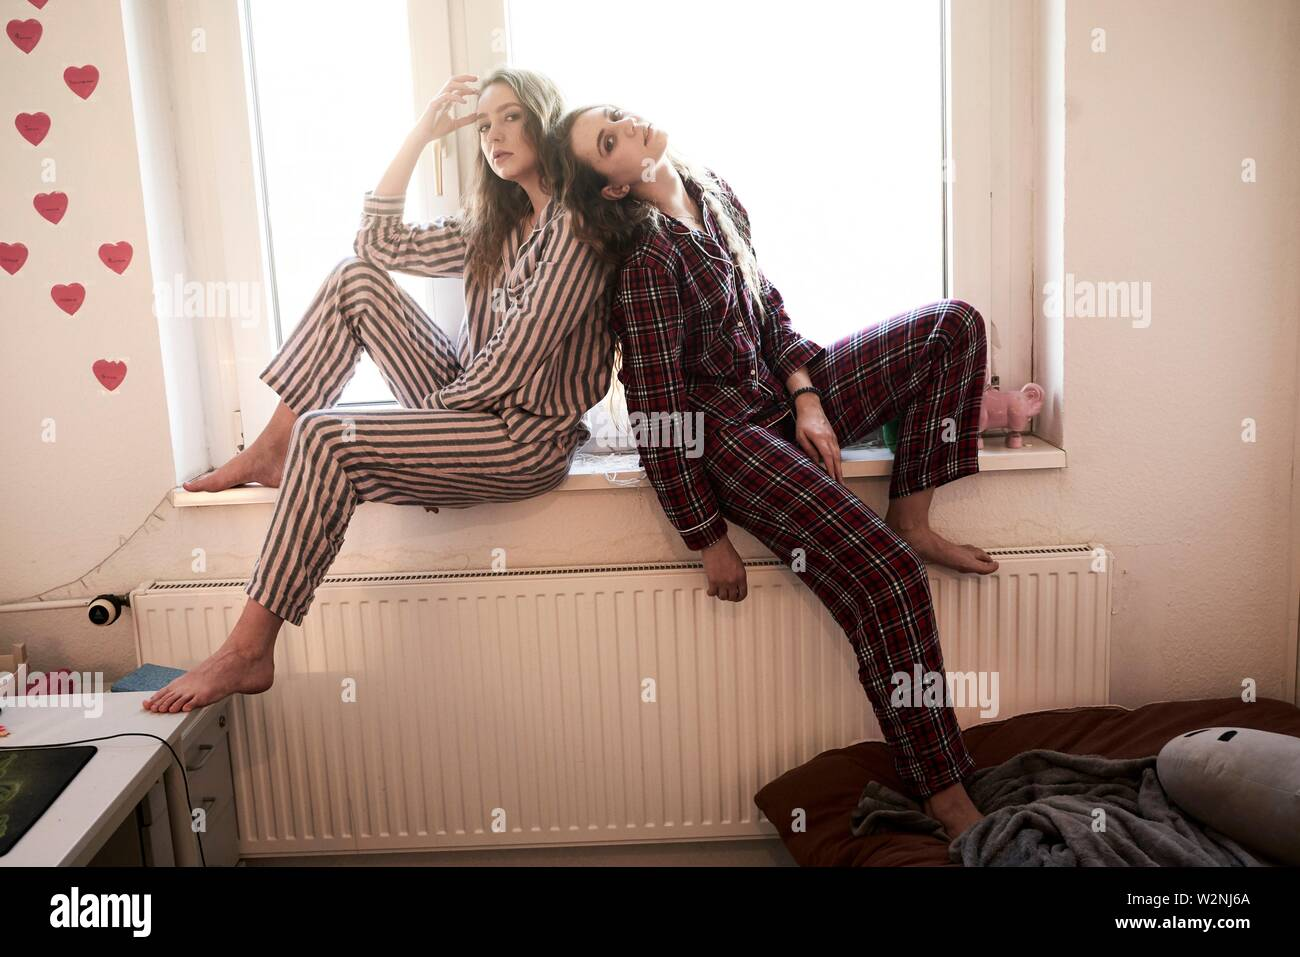 two young women in pyjamas sitting at windowsill in shared bedroom - Stock Image